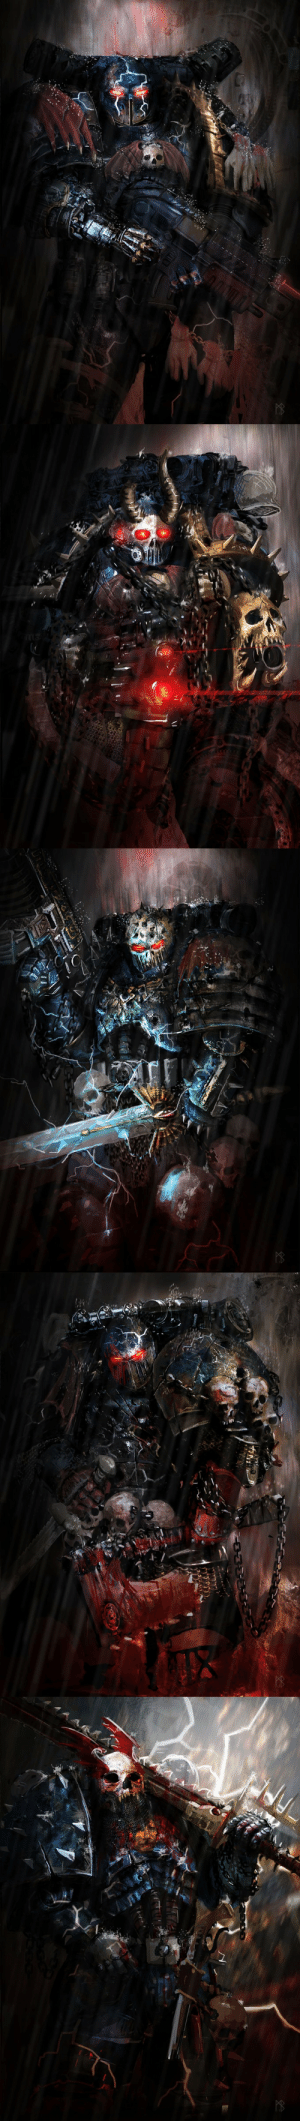 a-40k-author:  First Claw by Morten Bak Pøhlsgaard.: a-40k-author:  First Claw by Morten Bak Pøhlsgaard.